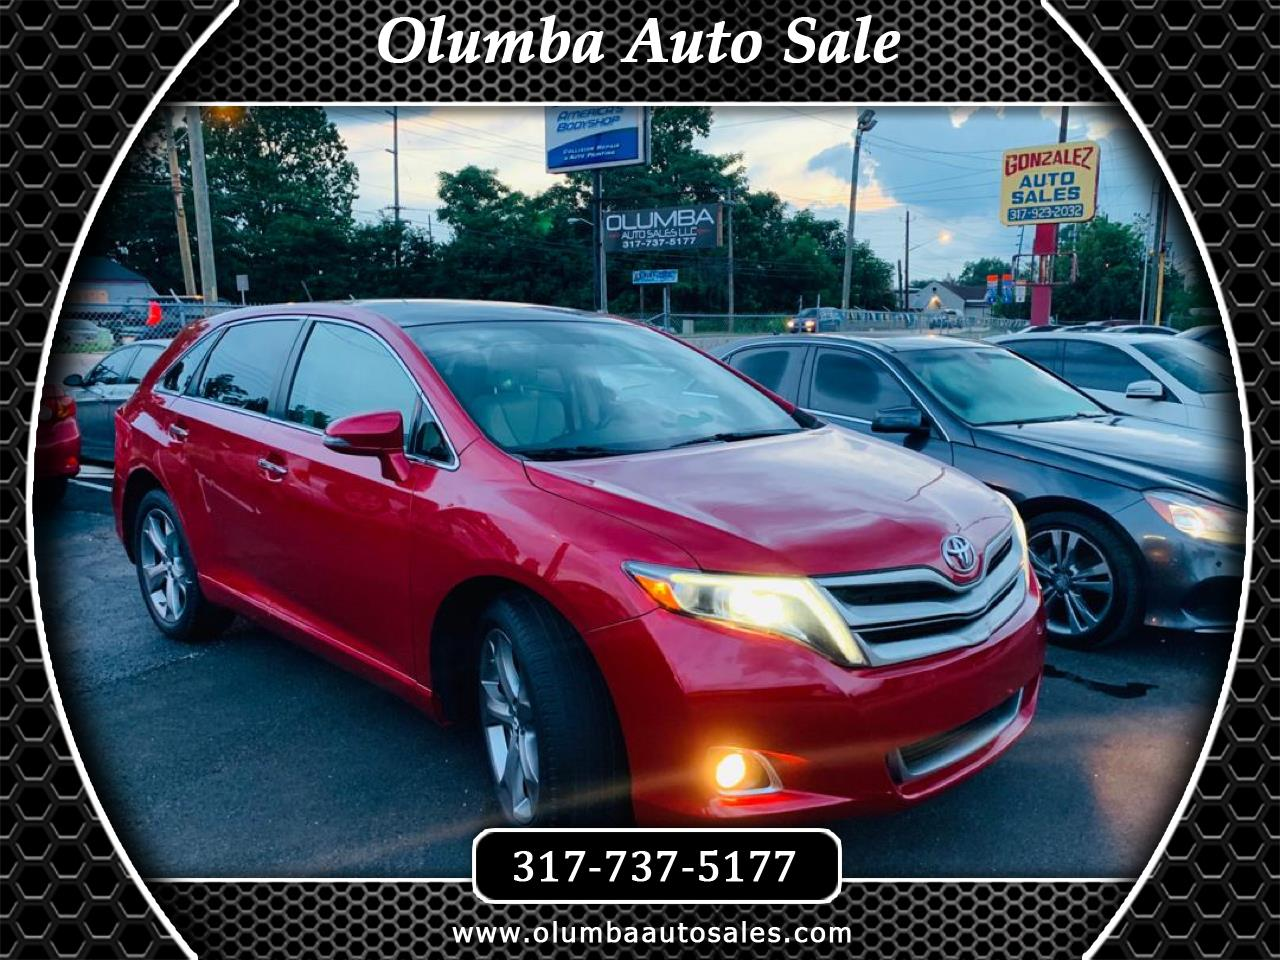 Gonzalez Auto Sales >> Used Cars For Sale Indianapolis In 46222 Olumba Auto Sale